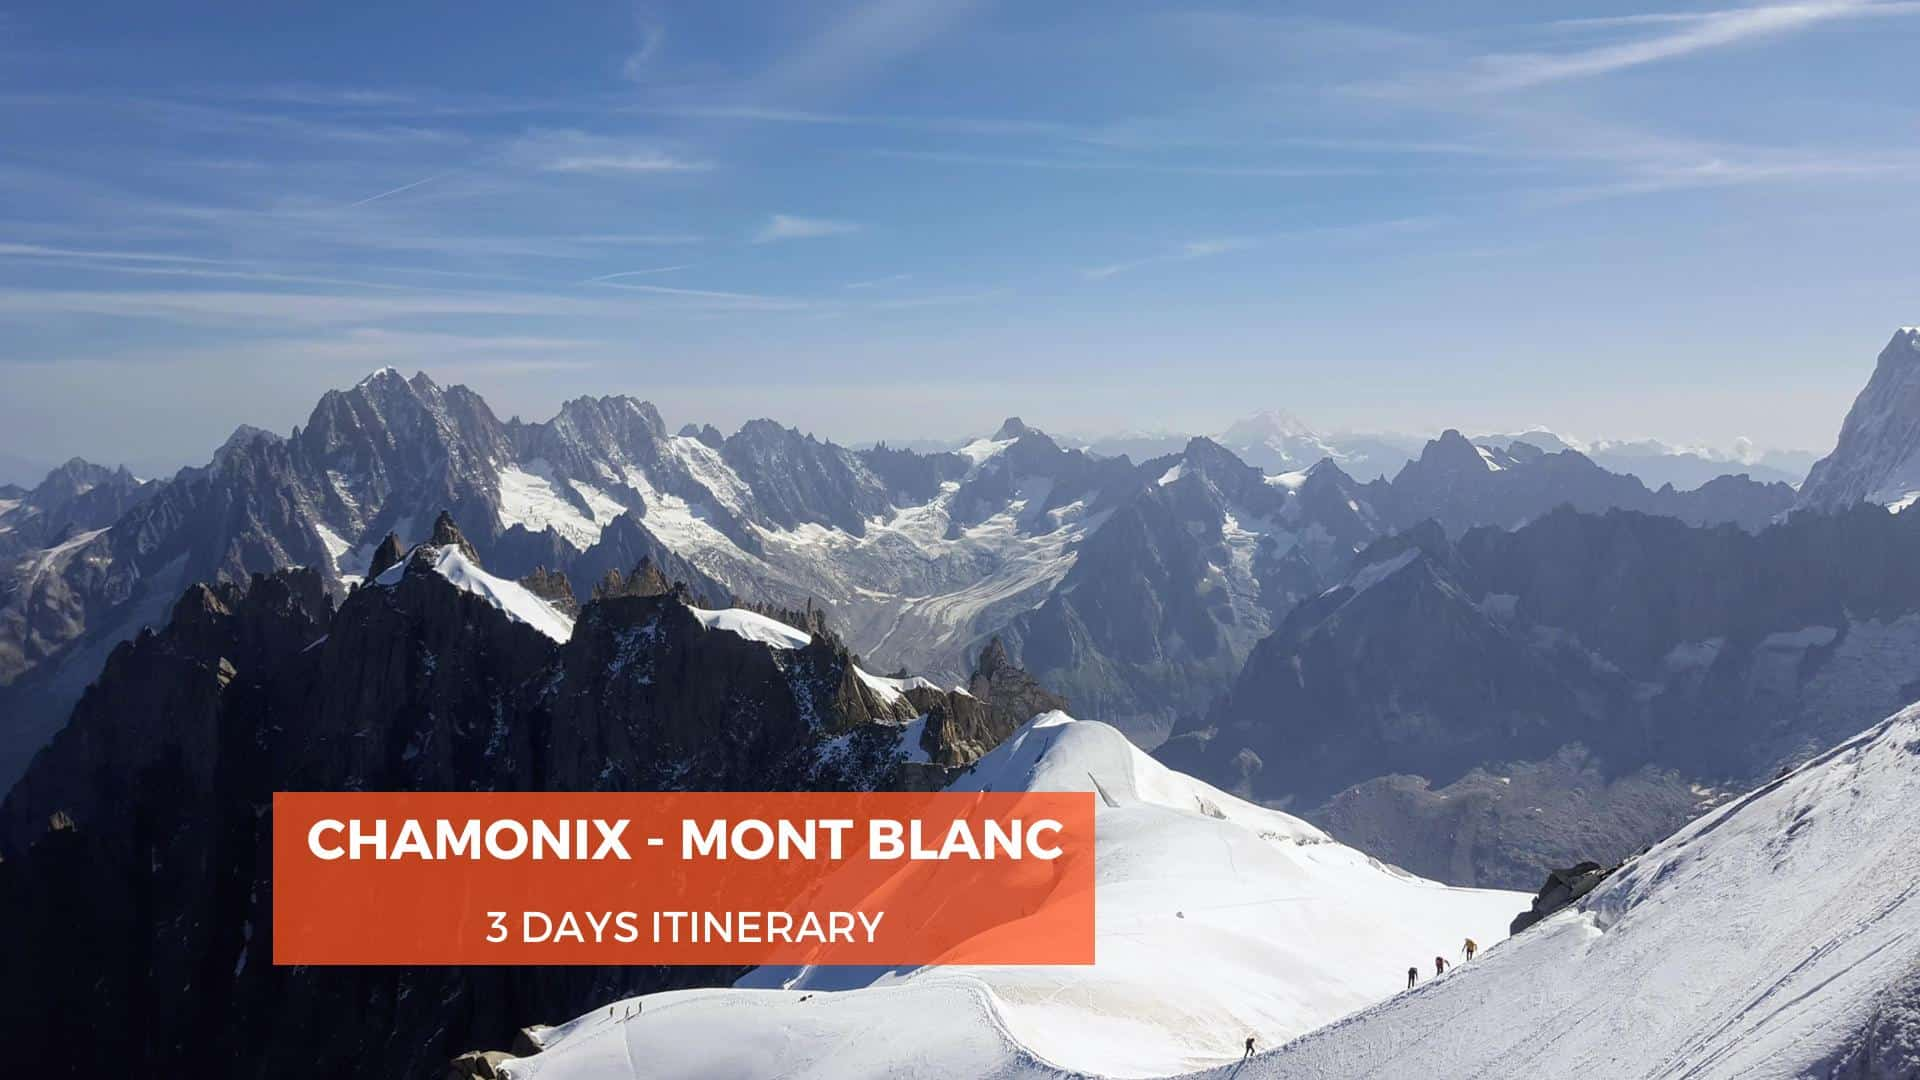 3 Days Itinerary Tour Of Chamonix Mont Blanc Singapore Travel Blog 2018 Europe Germany